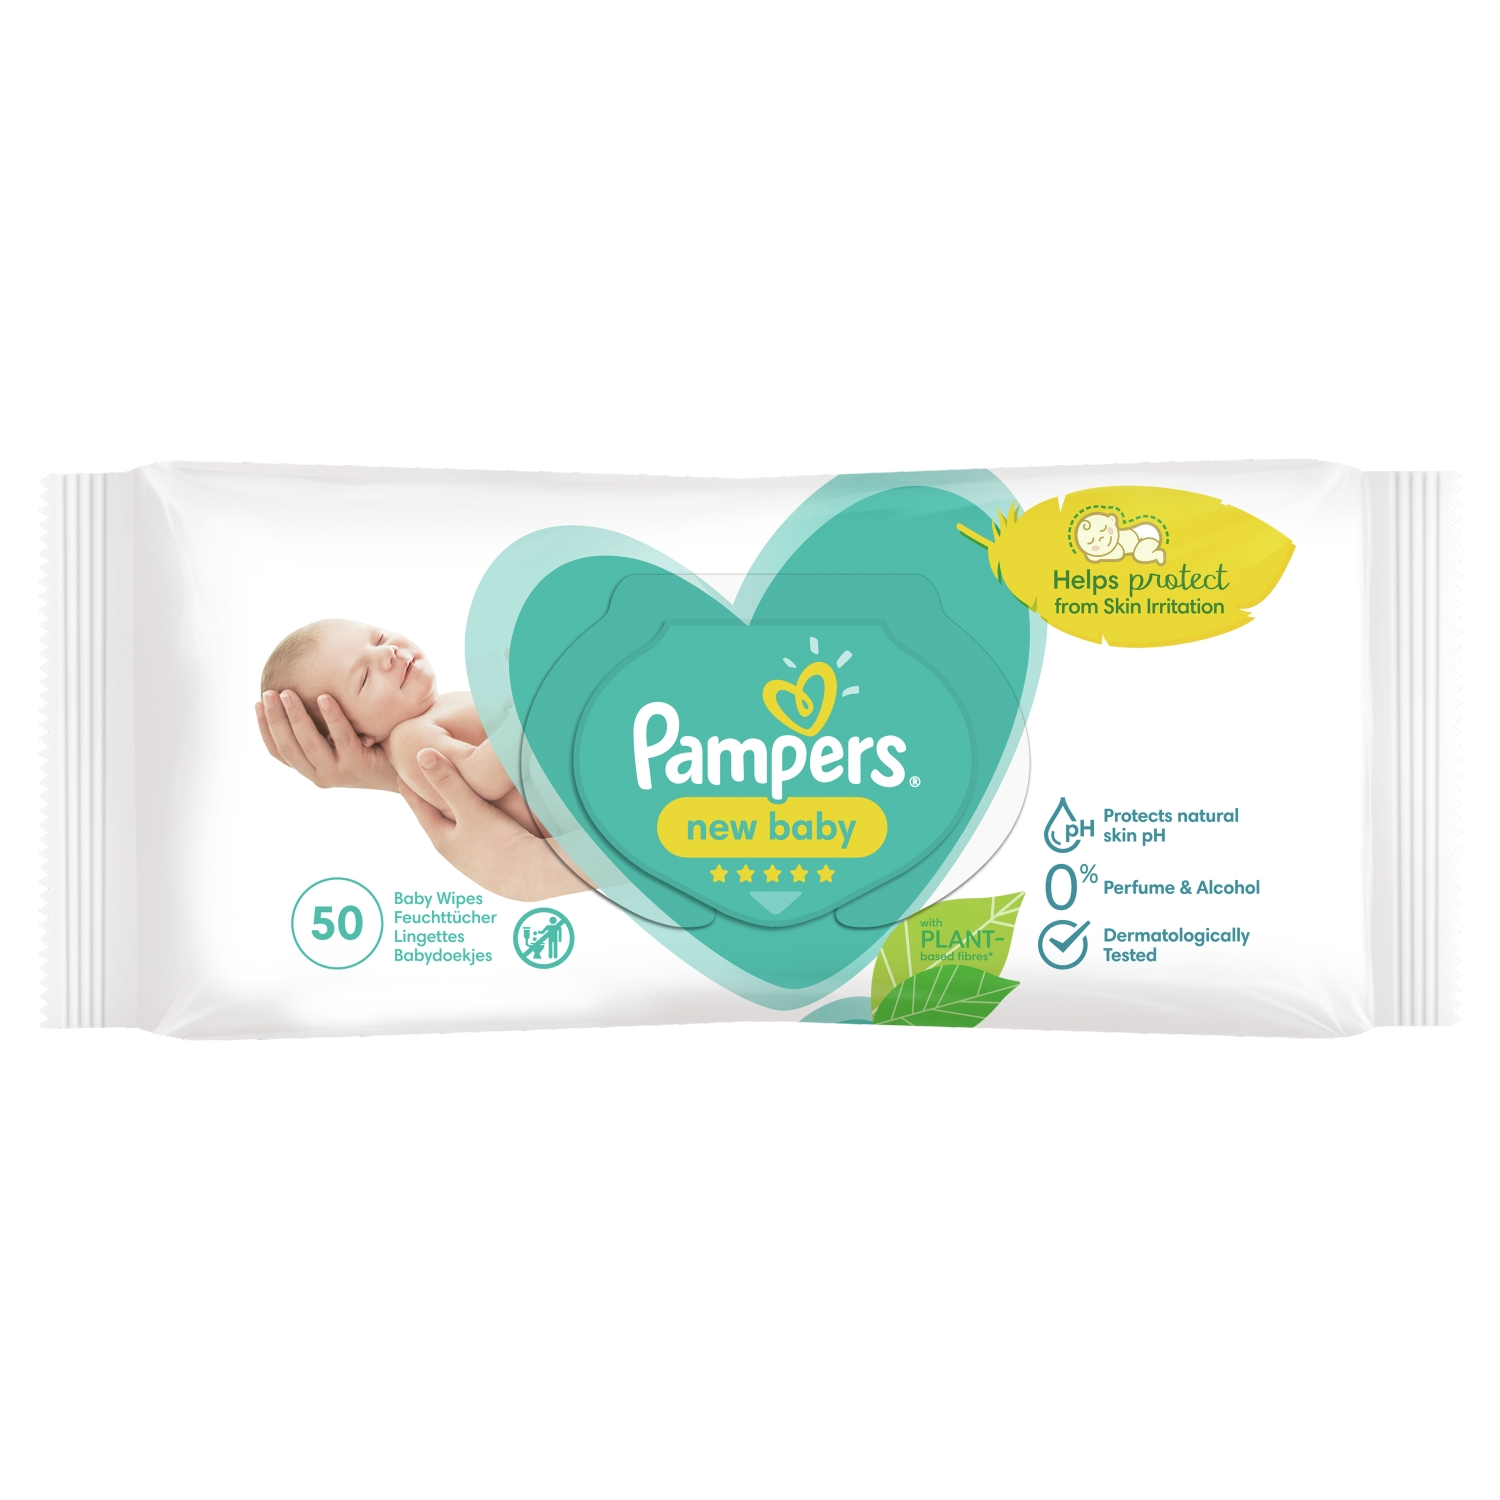 Pampers New Baby Wipes 1 Pack = 50 Baby Wet Wipes